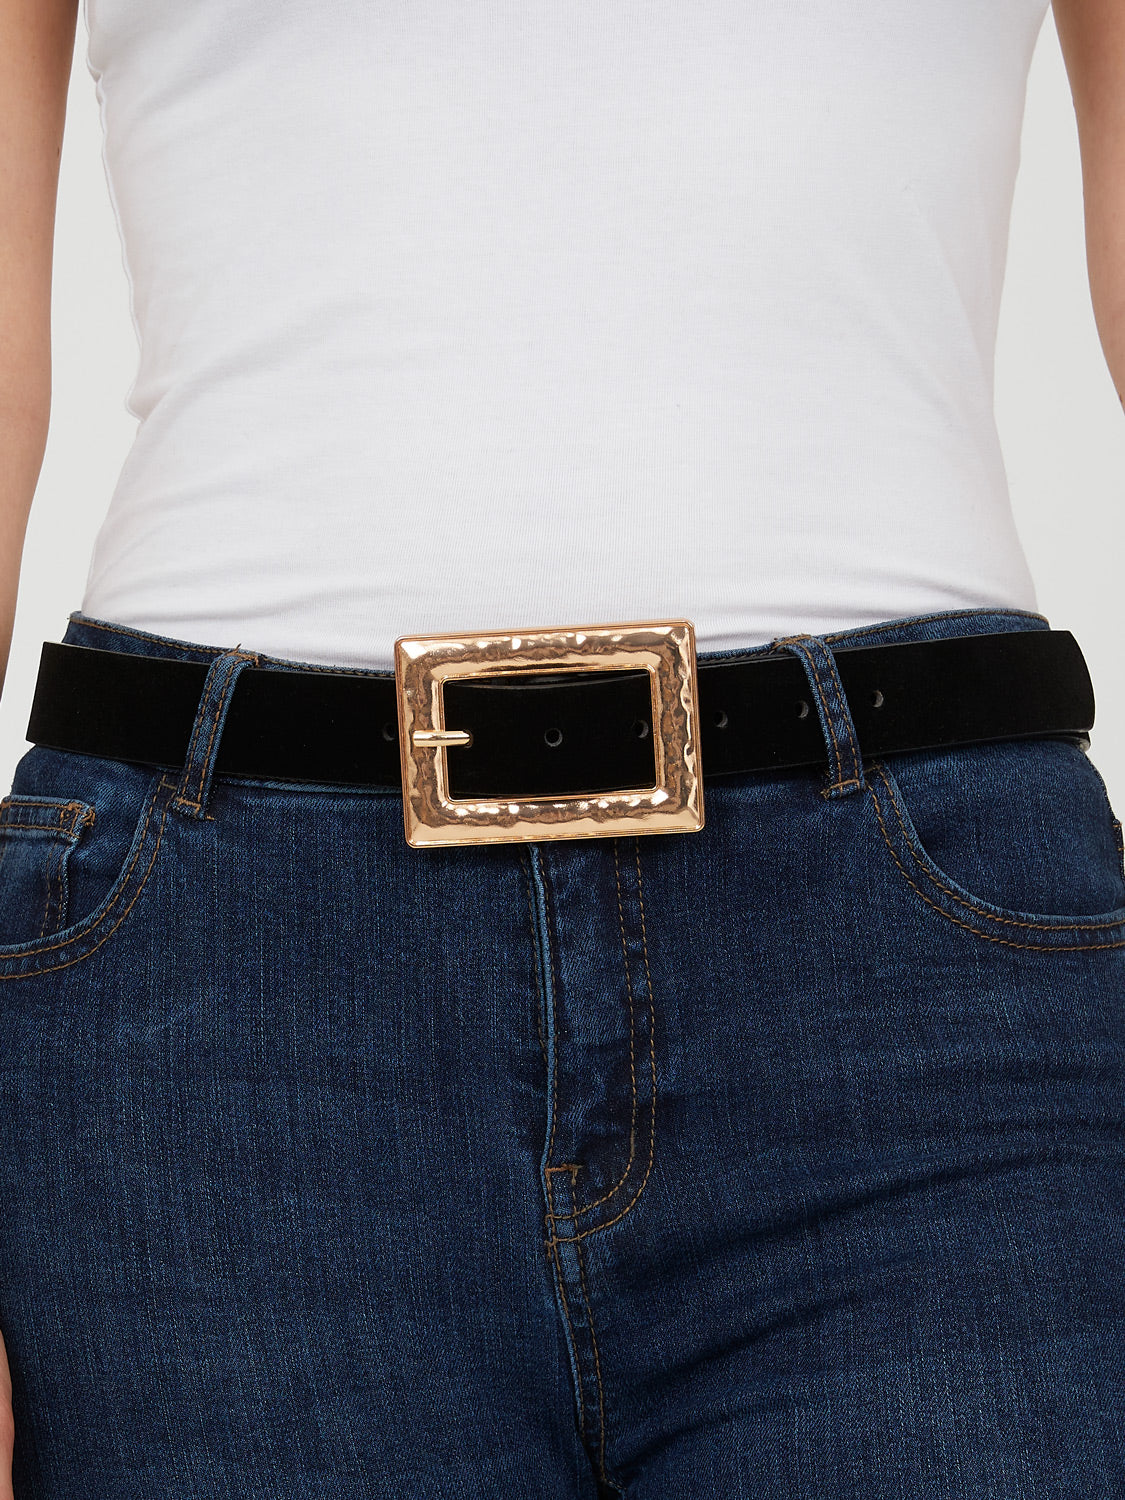 Gold Rectangle Buckle Belt